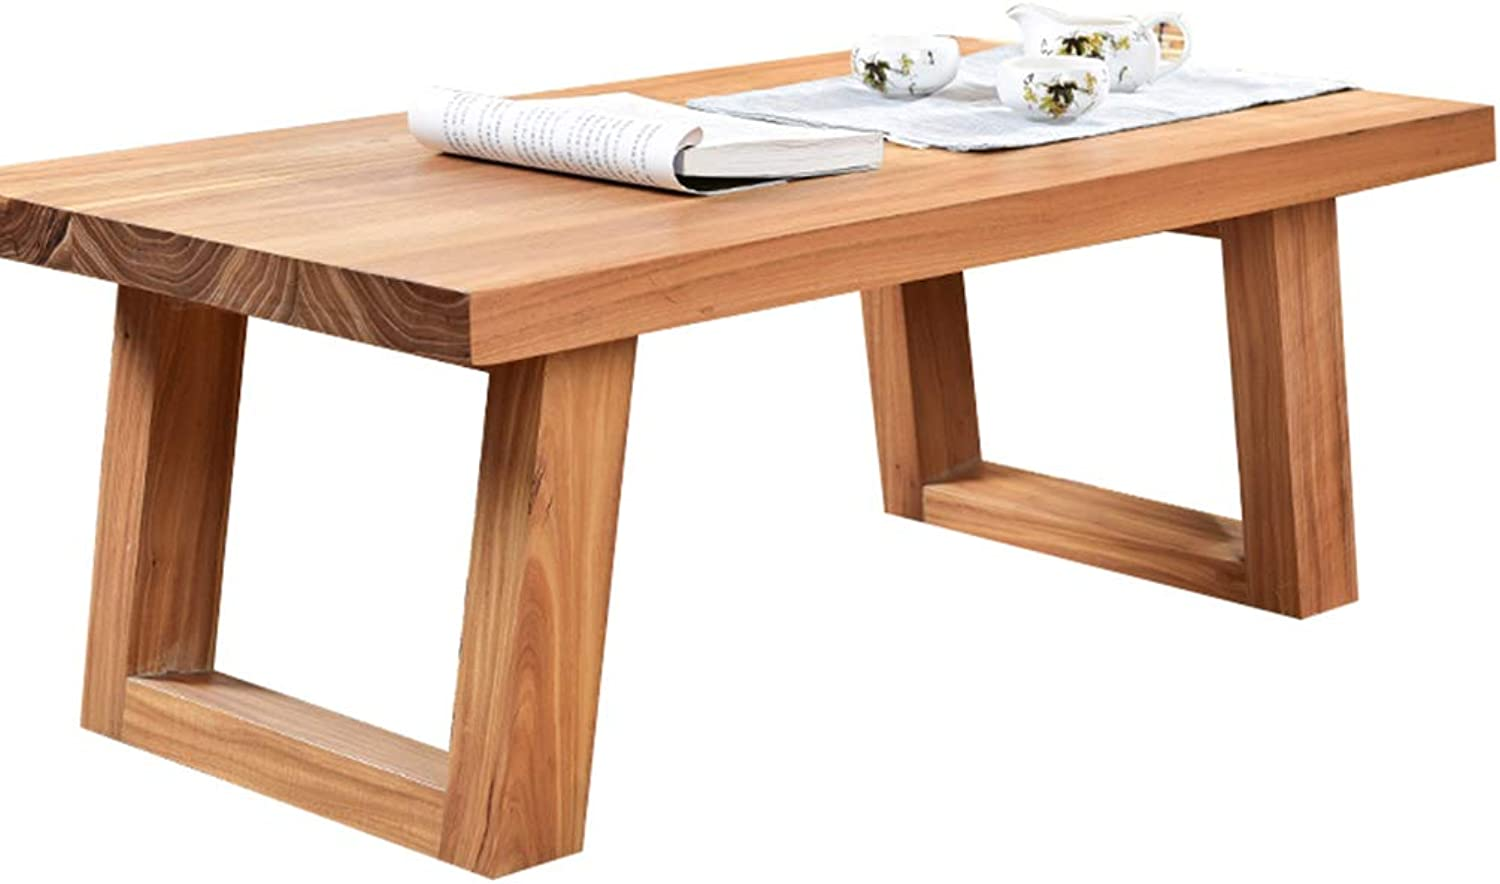 Coffee Table Solid Wood Simple Modern Balcony Small Coffee Table Low Table Platform Table Old Elm Bay Window Table Tables (color   Brown, Size   50  35  30cm)